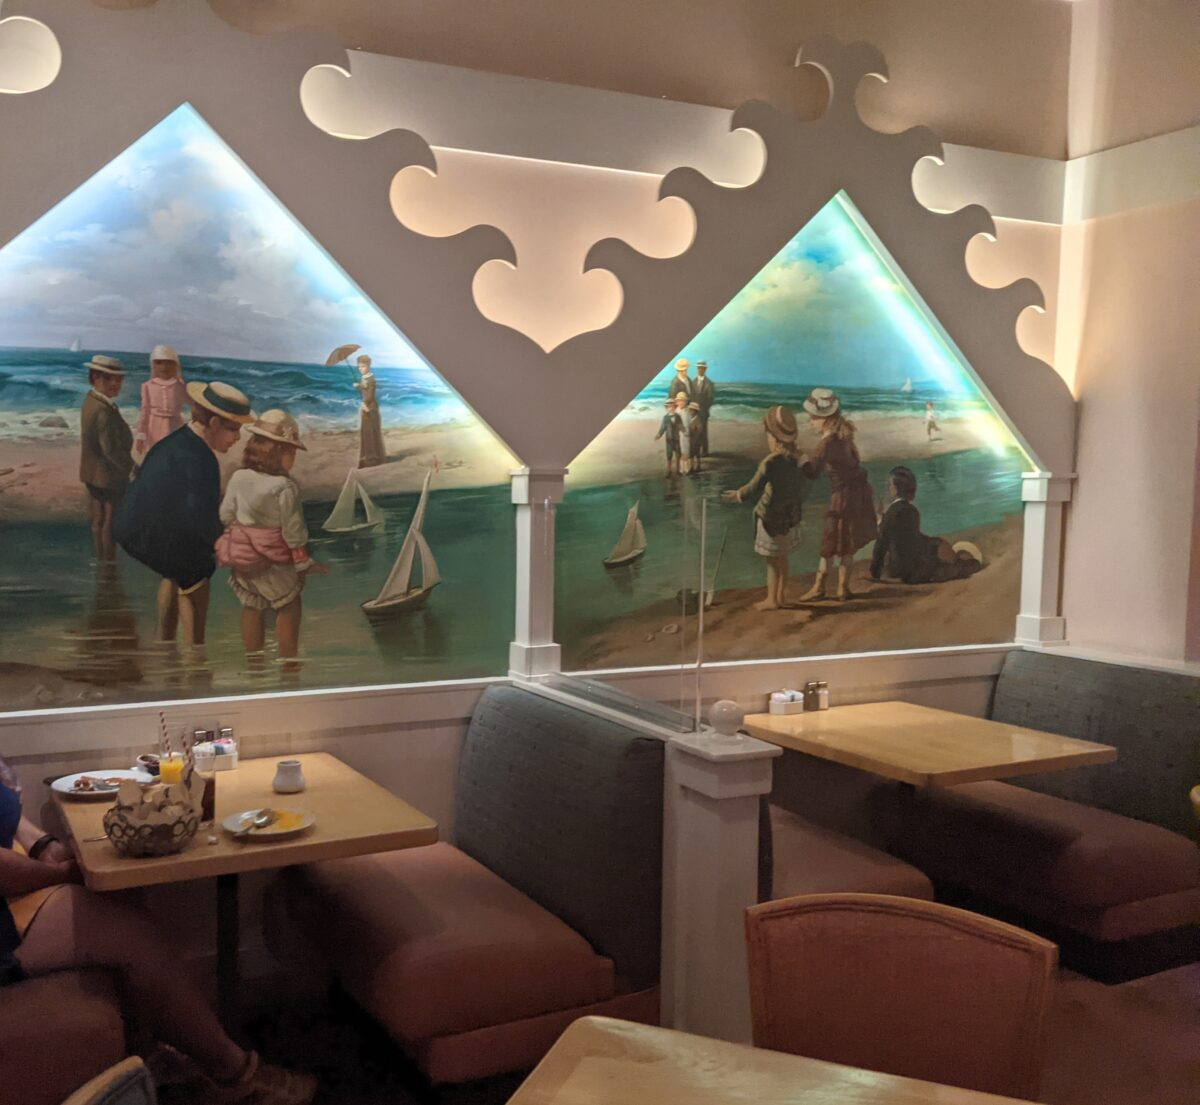 Cape May Cafe at Beach Club in Disney World has a great New Jersey beach theme